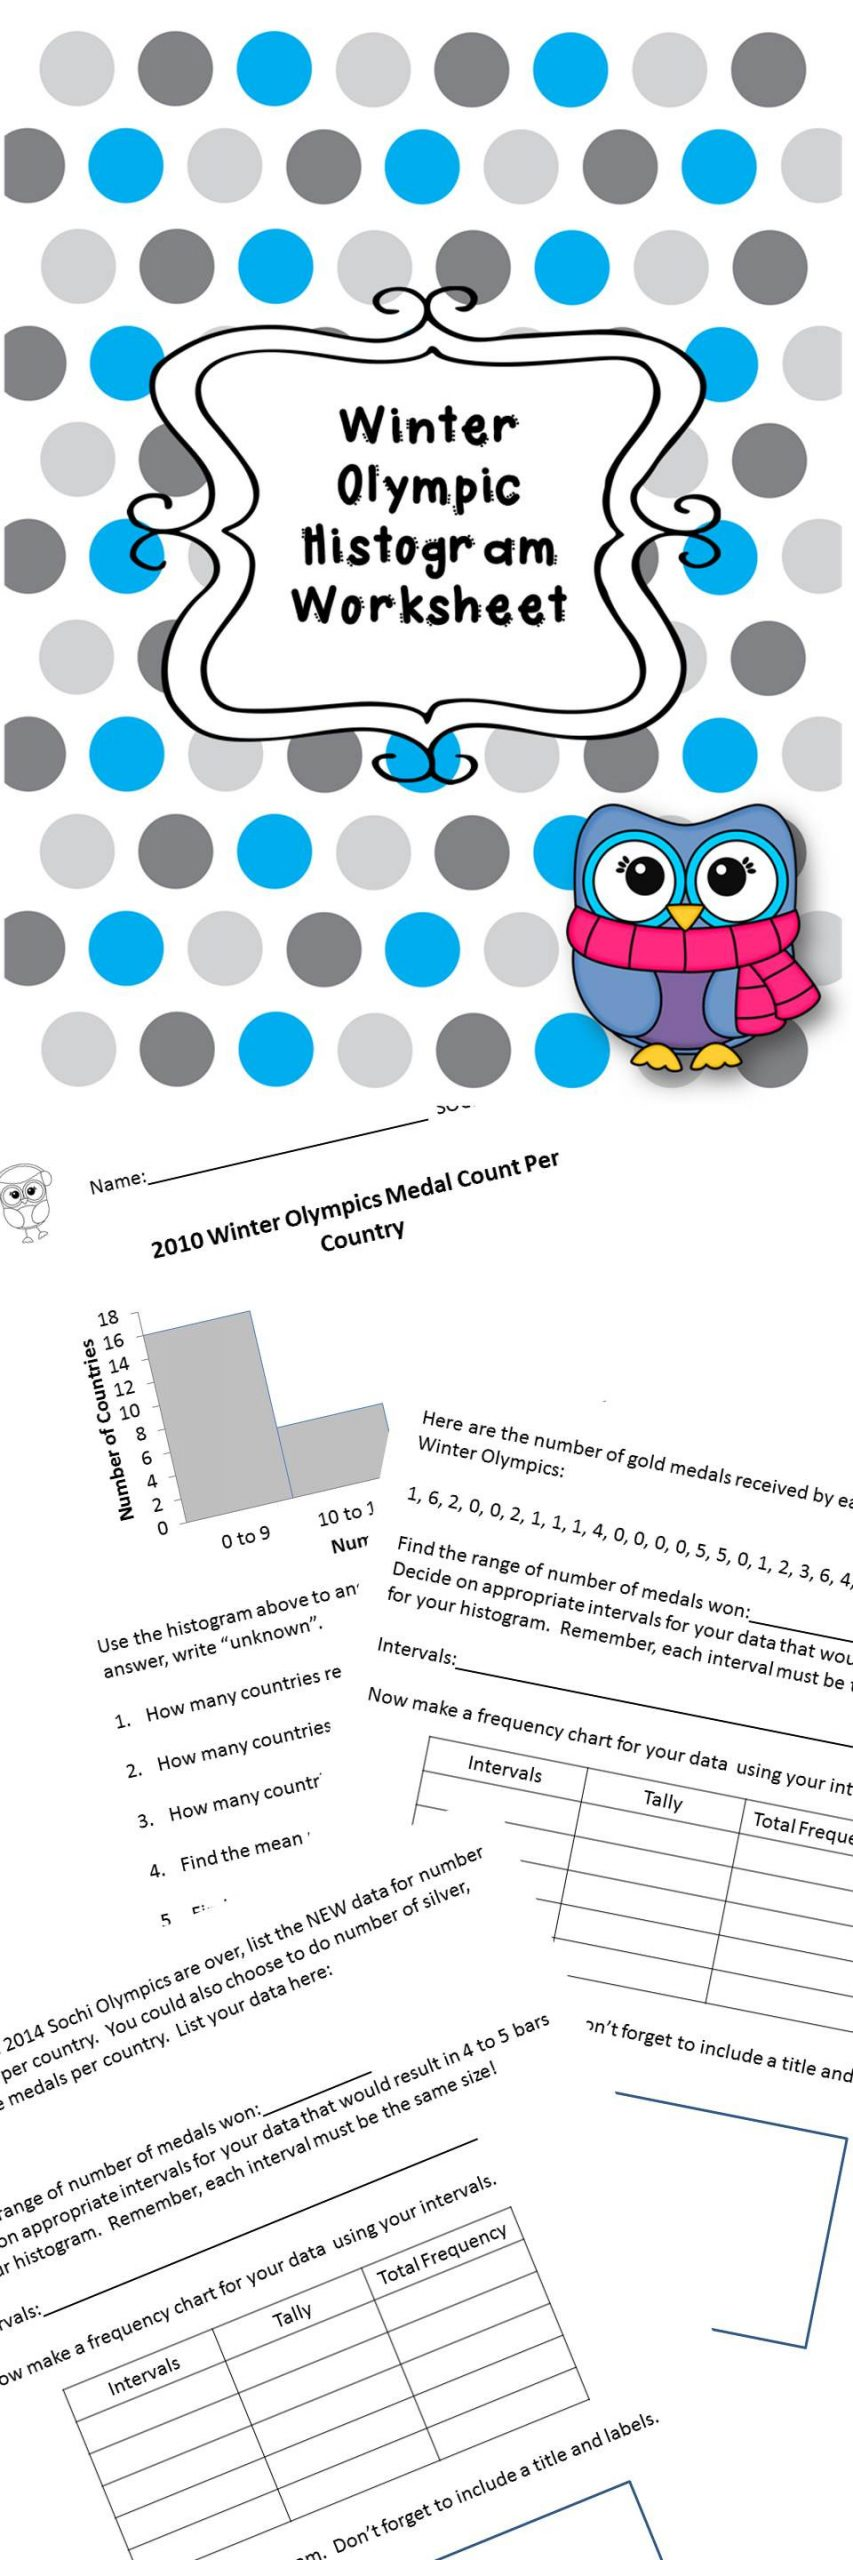 Histogram Worksheets for 6th Grade Winter Olympic Histogram Worksheet